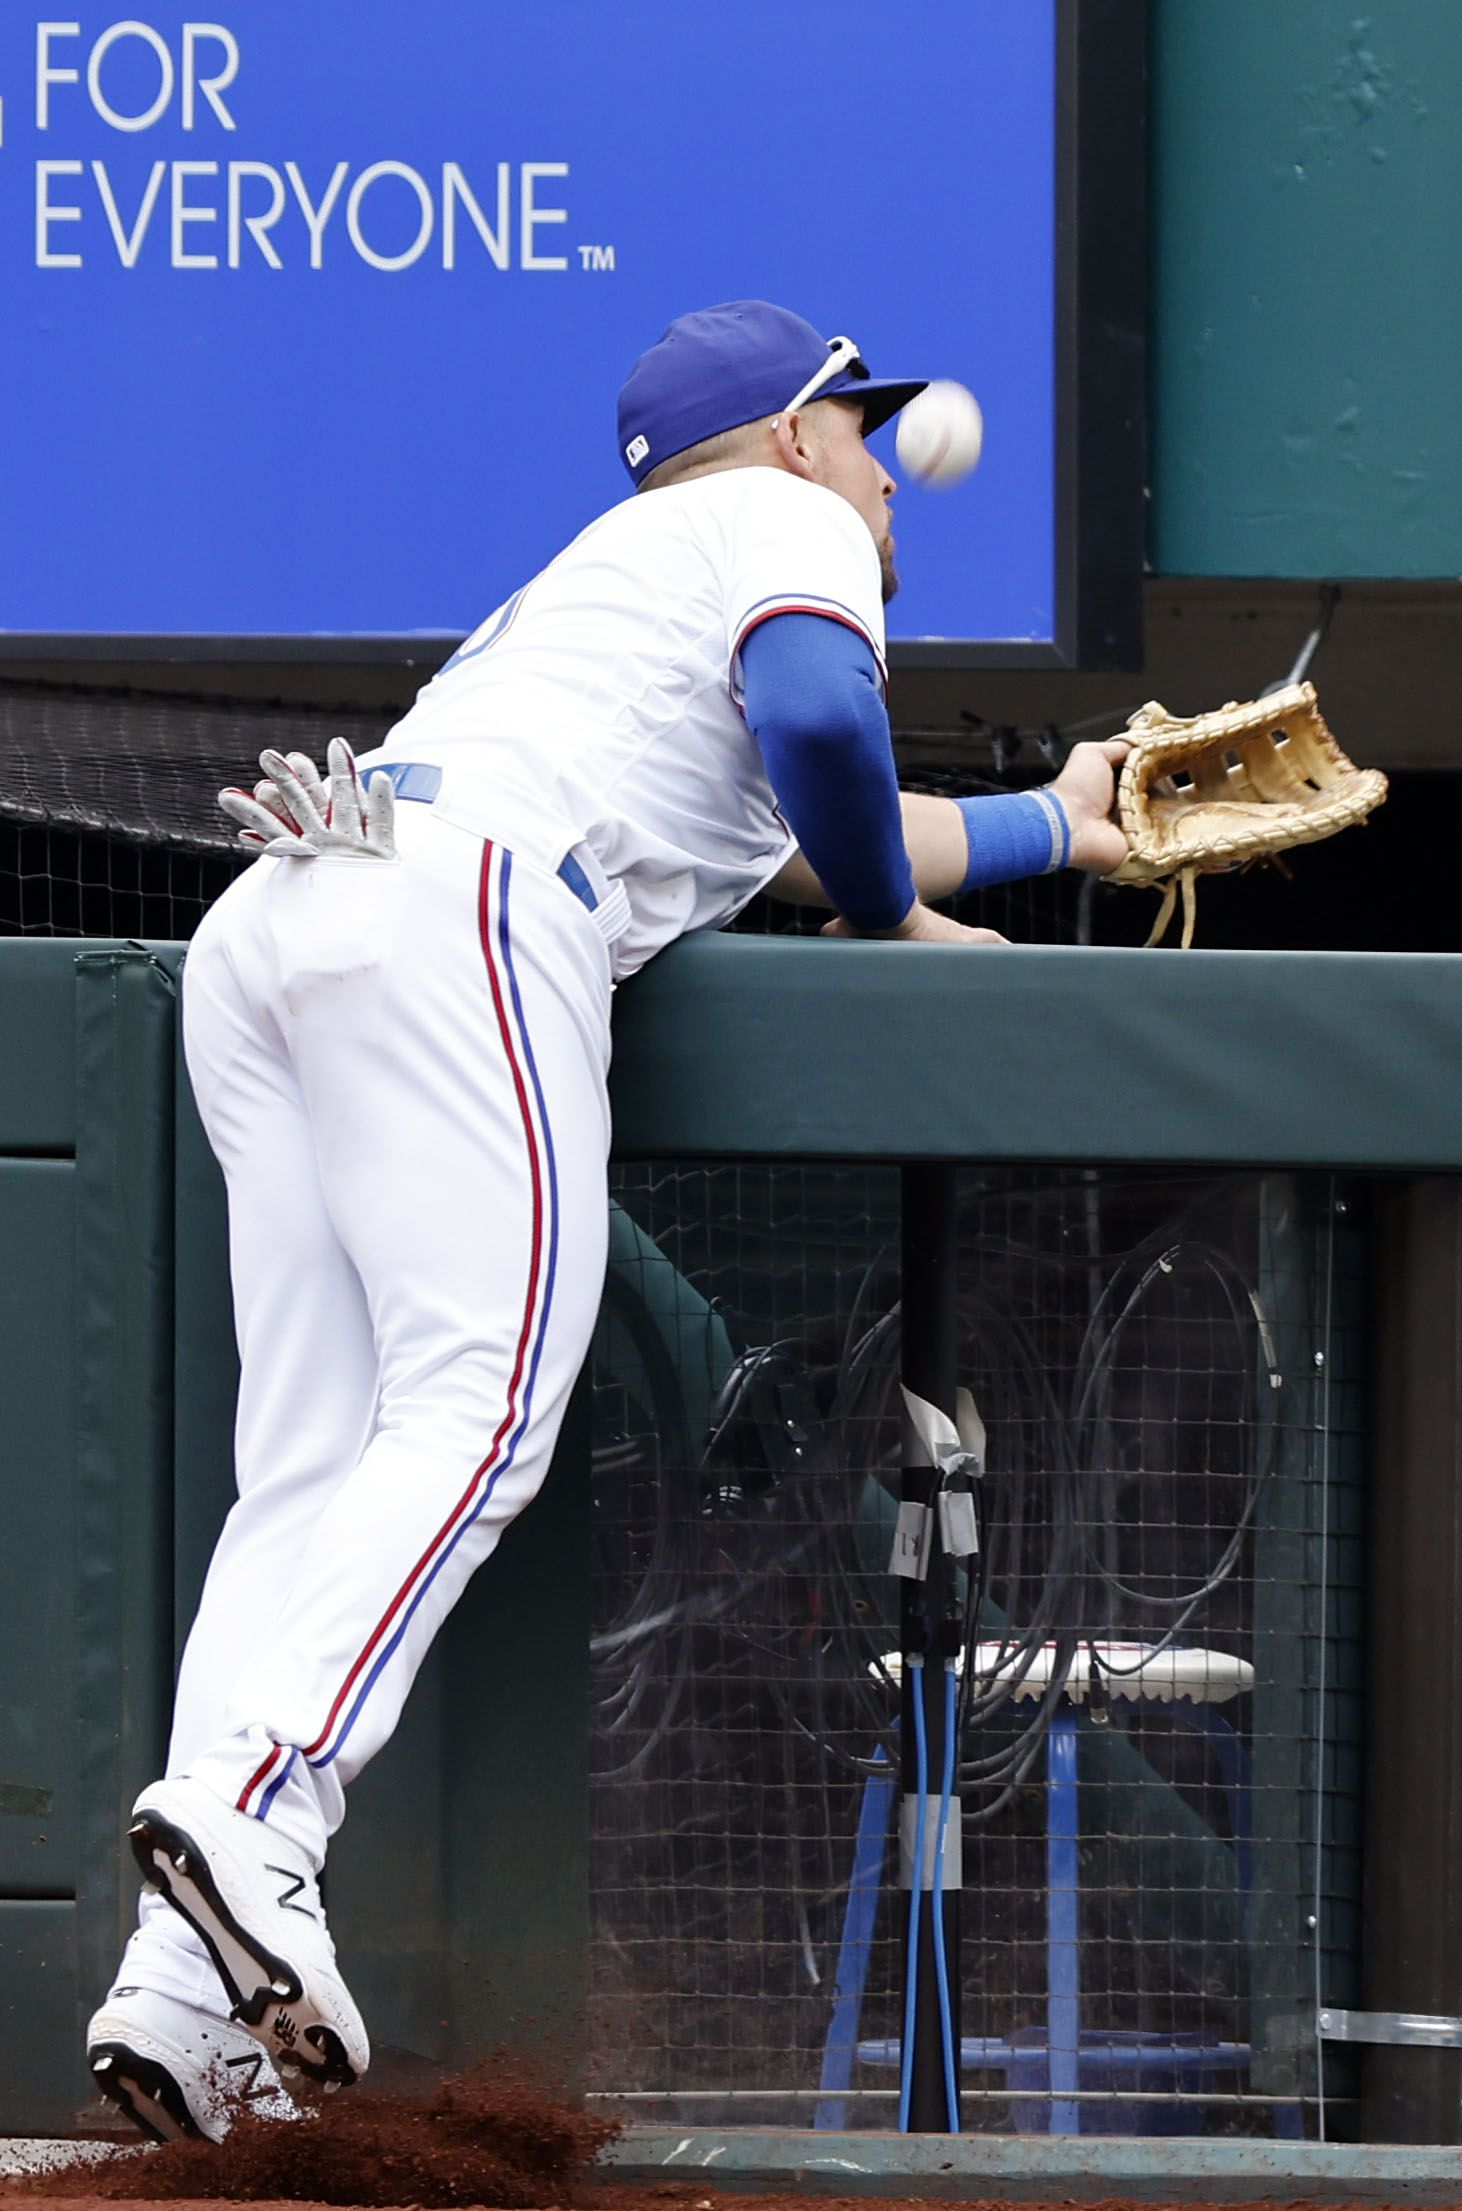 Texas Rangers first baseman Nate Lowe (30) attempts to catch a Toronto Blue Jays foul ball during ninth inning at Globe Life Field in Arlington, Monday, April 5, 2021. The Texas Rangers were facing the Toronto Blue Jays in their home opener. The Rangers lost, 6-4. (Tom Fox/The Dallas Morning News)